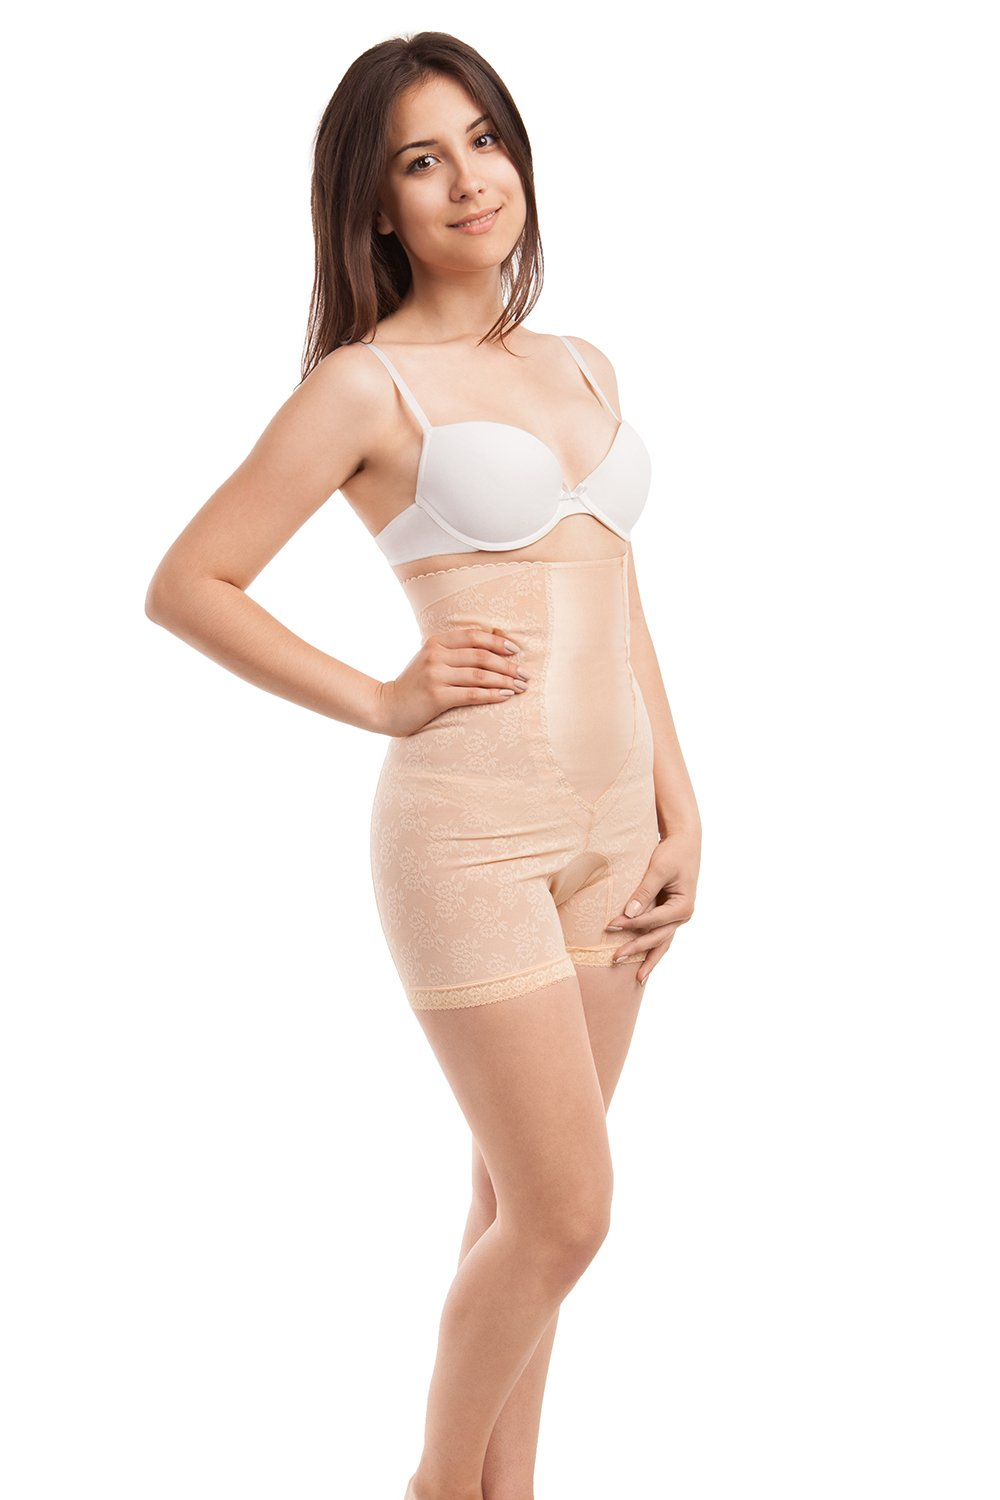 Abdominal and Back Support Girdle - Gabrialla